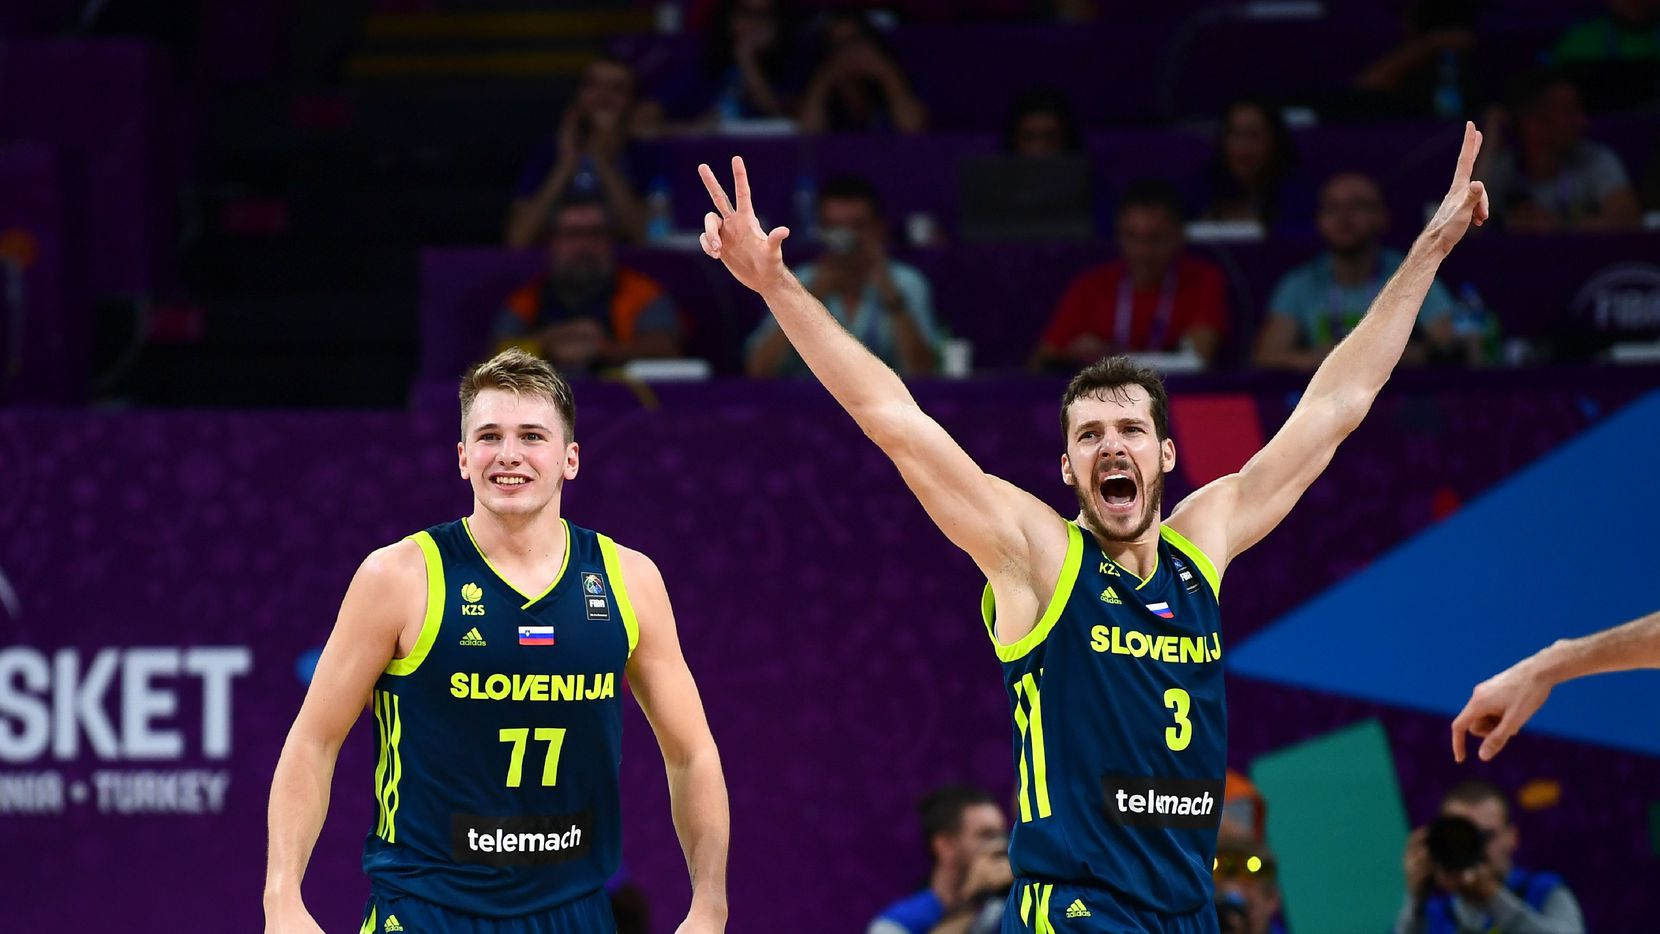 Slovenia's guard Luka Doncic (C) and Goran Dragic (R) celebrate after scoring during the FIBA Eurobasket 2017 men's semi-final basketball match between Spain and Slovenia at the Fenerbahce Ulker Sport Arena in Istanbul on September 14, 2017. / AFP PHOTO / OZAN KOSE